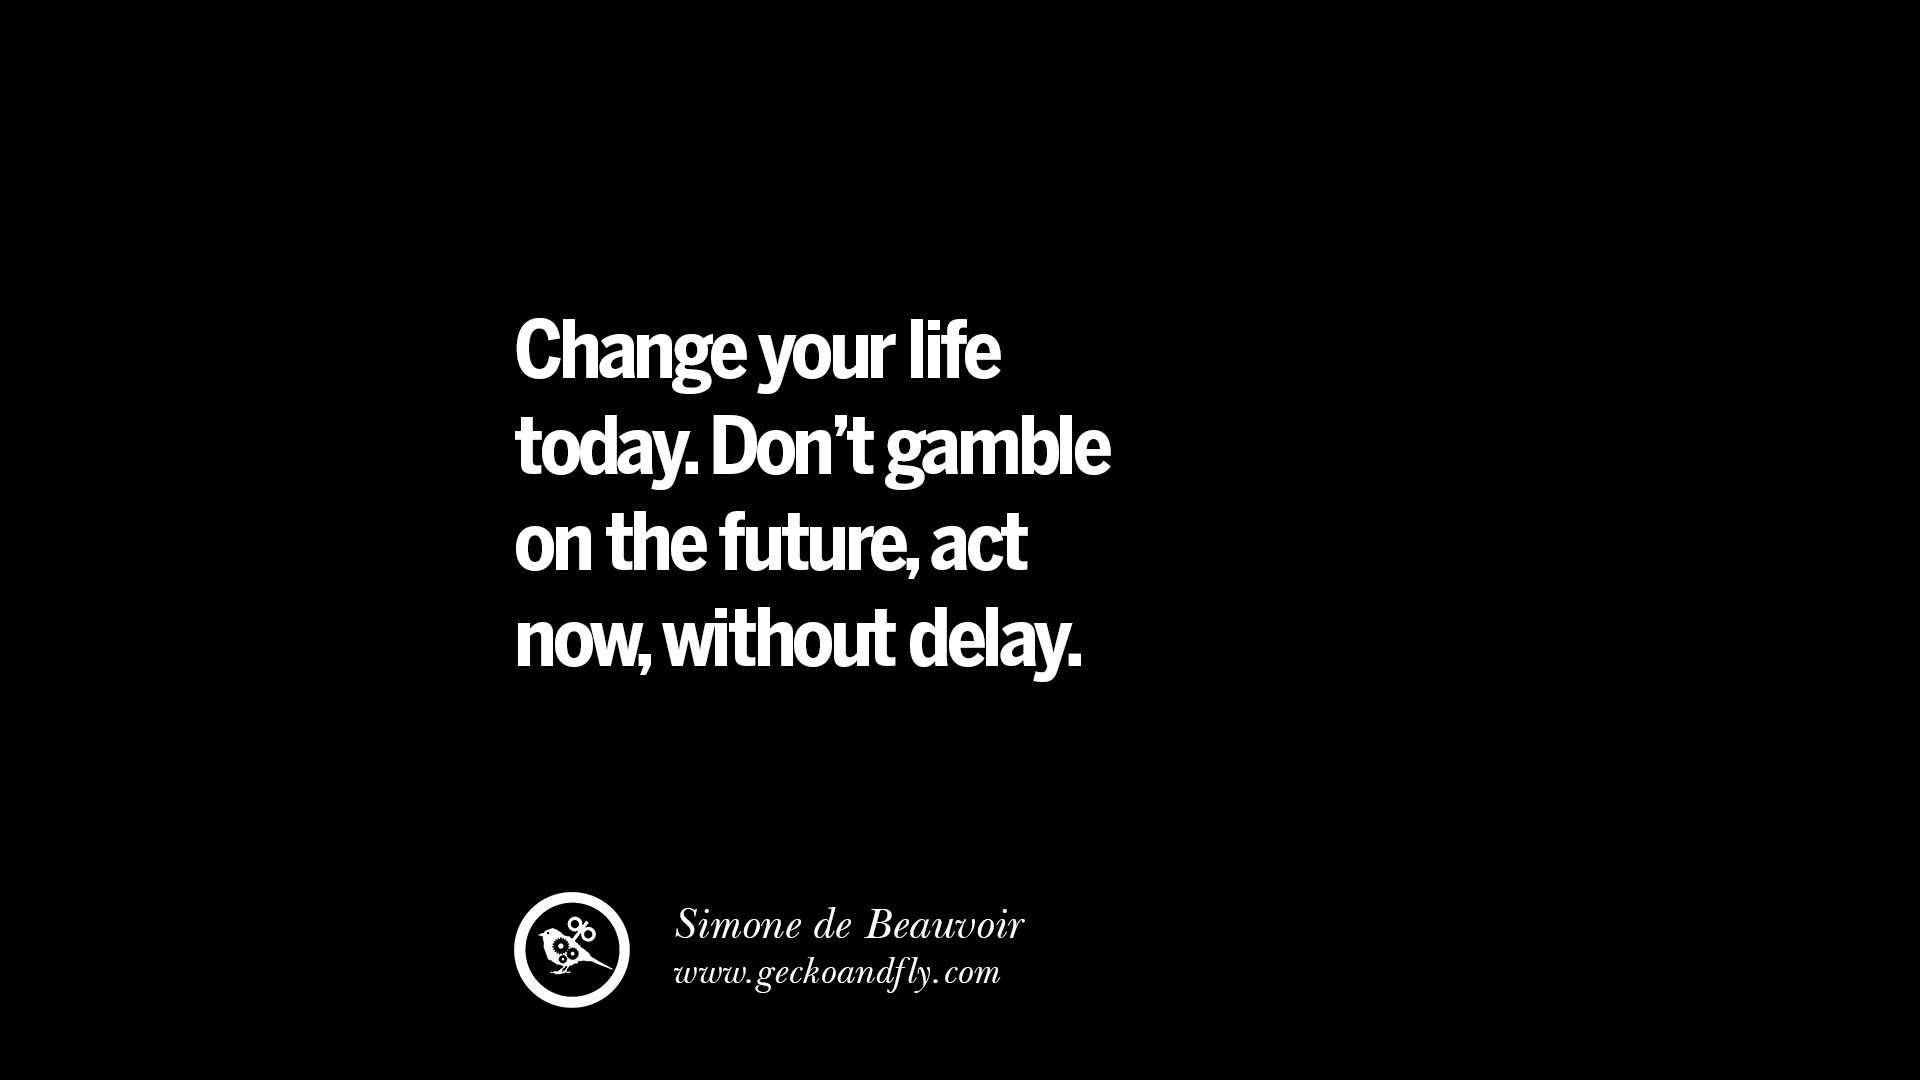 Quotes About Change In Life 45 Quotes On Change And Changing Our Attitudes  Geckoandfly 2018